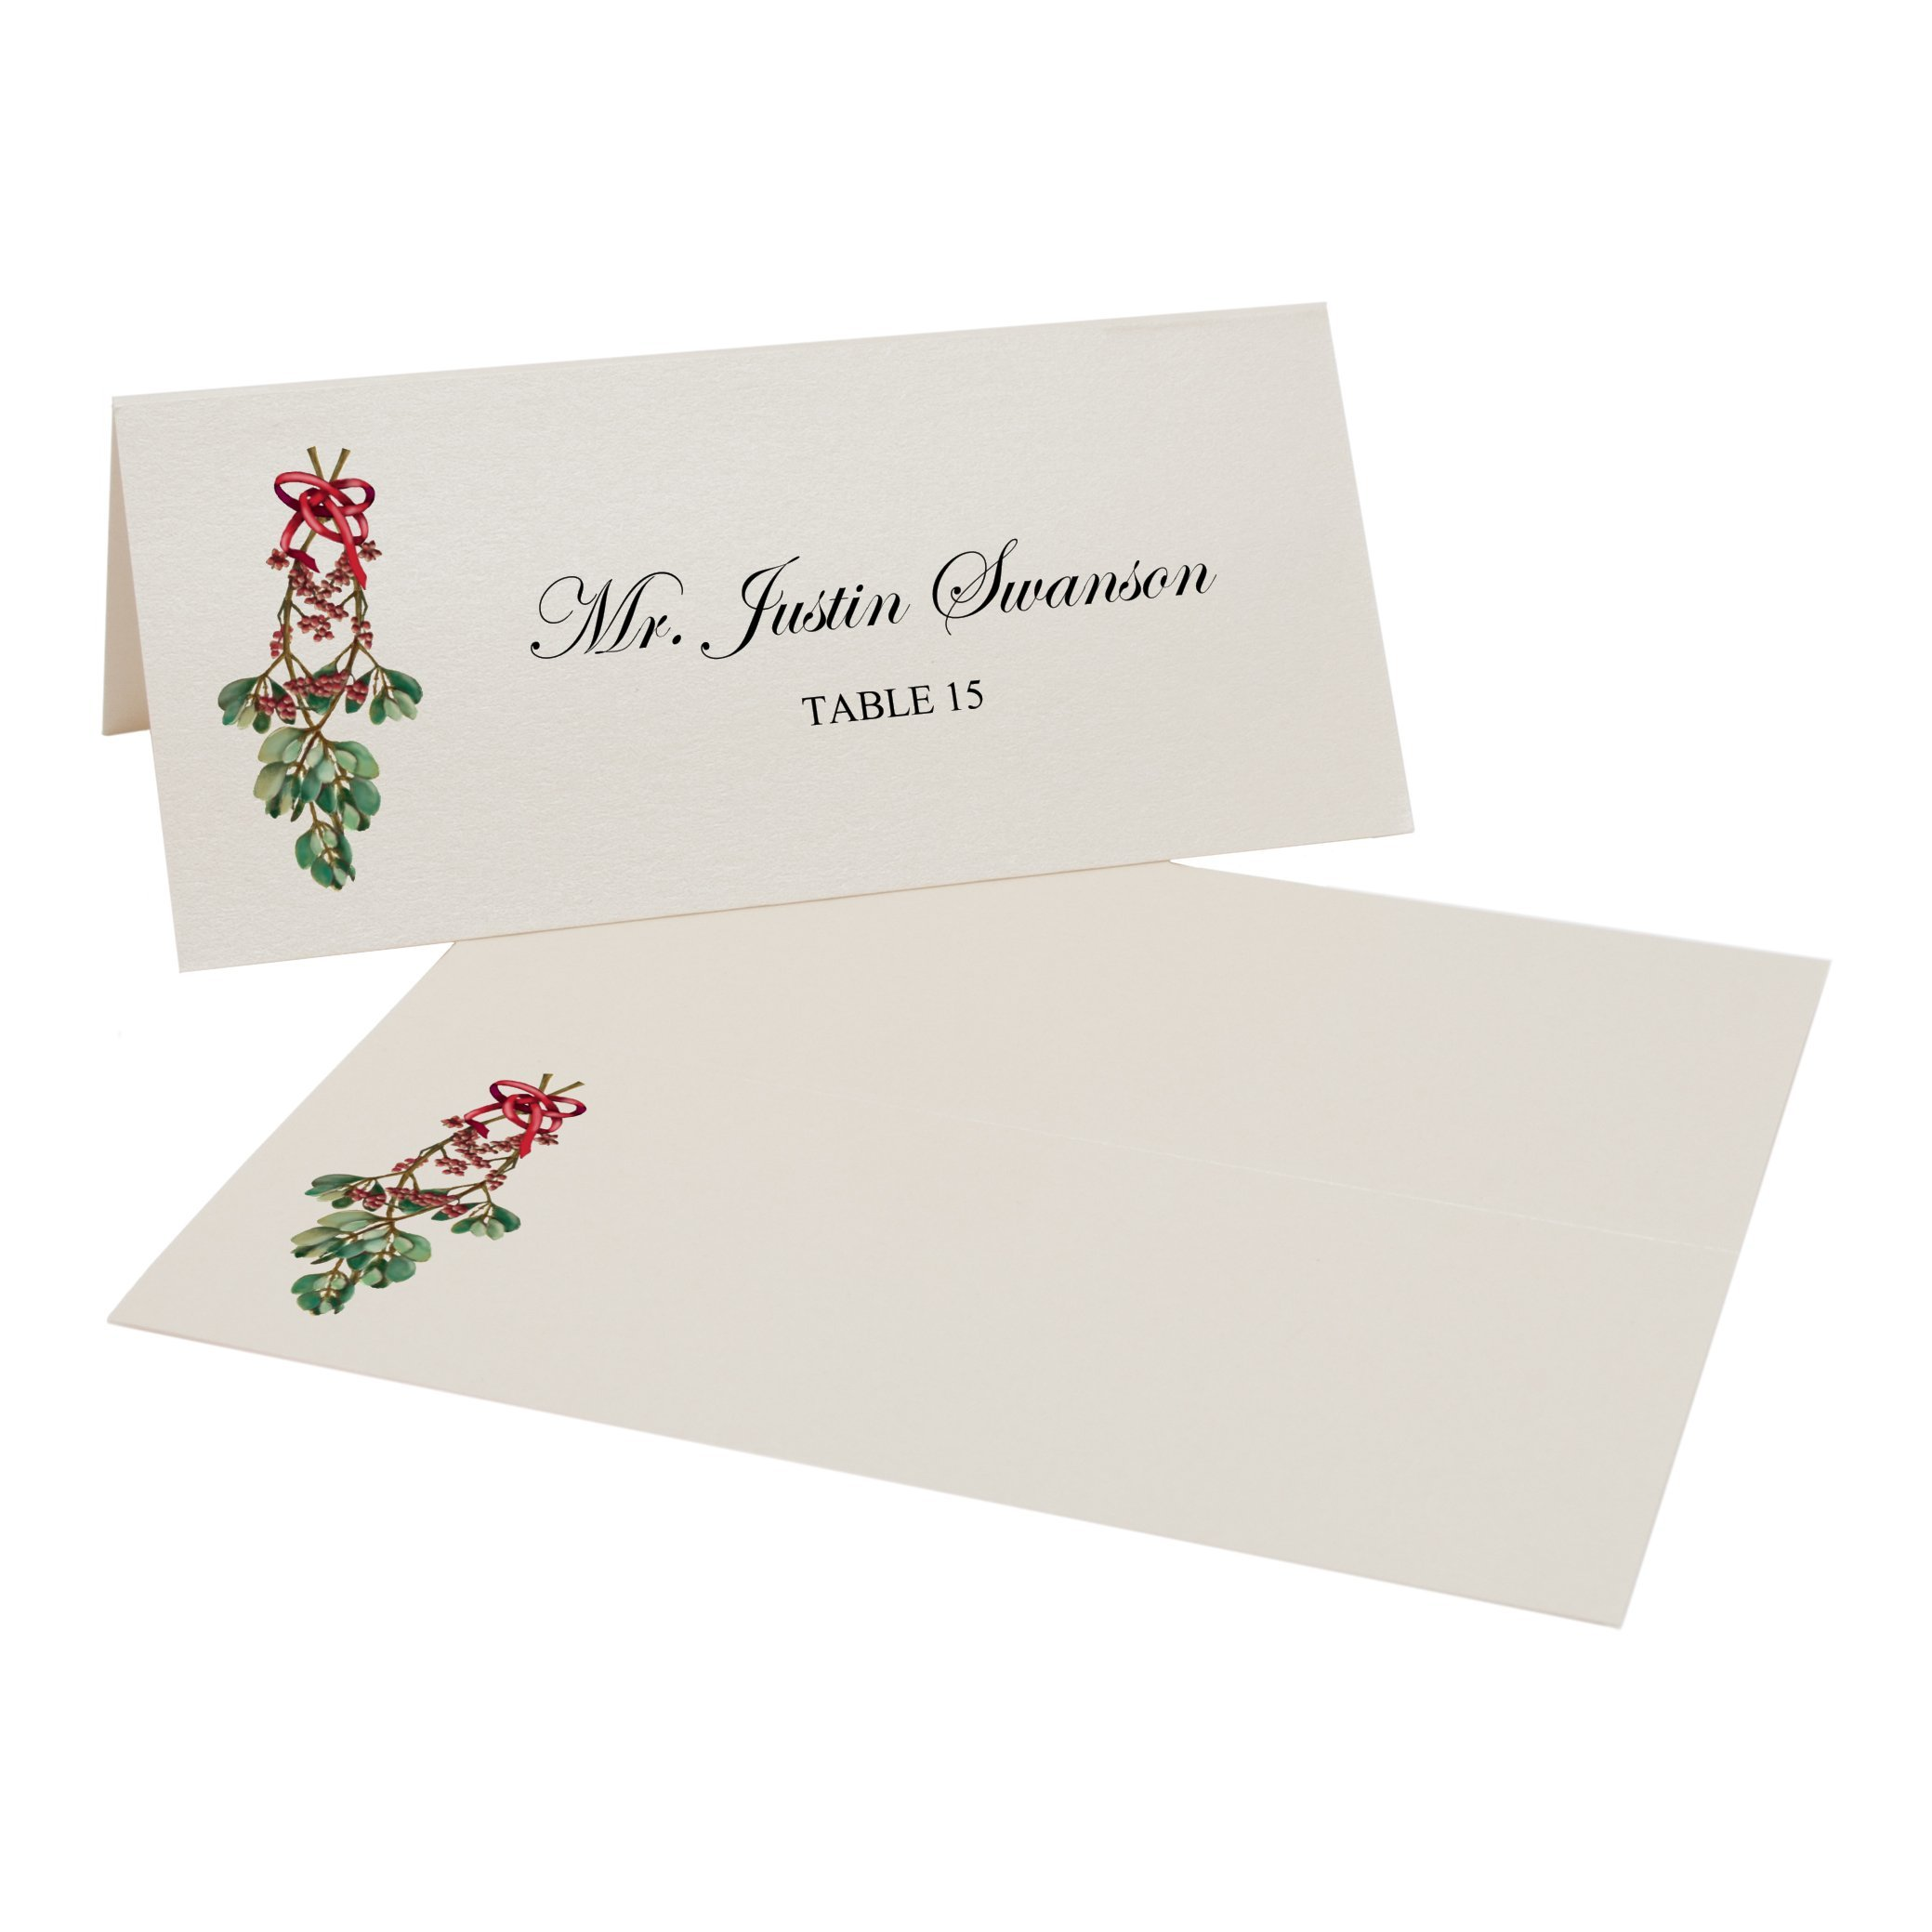 Mistletoe Place Cards, Champagne, Set of 375 by Documents and Designs